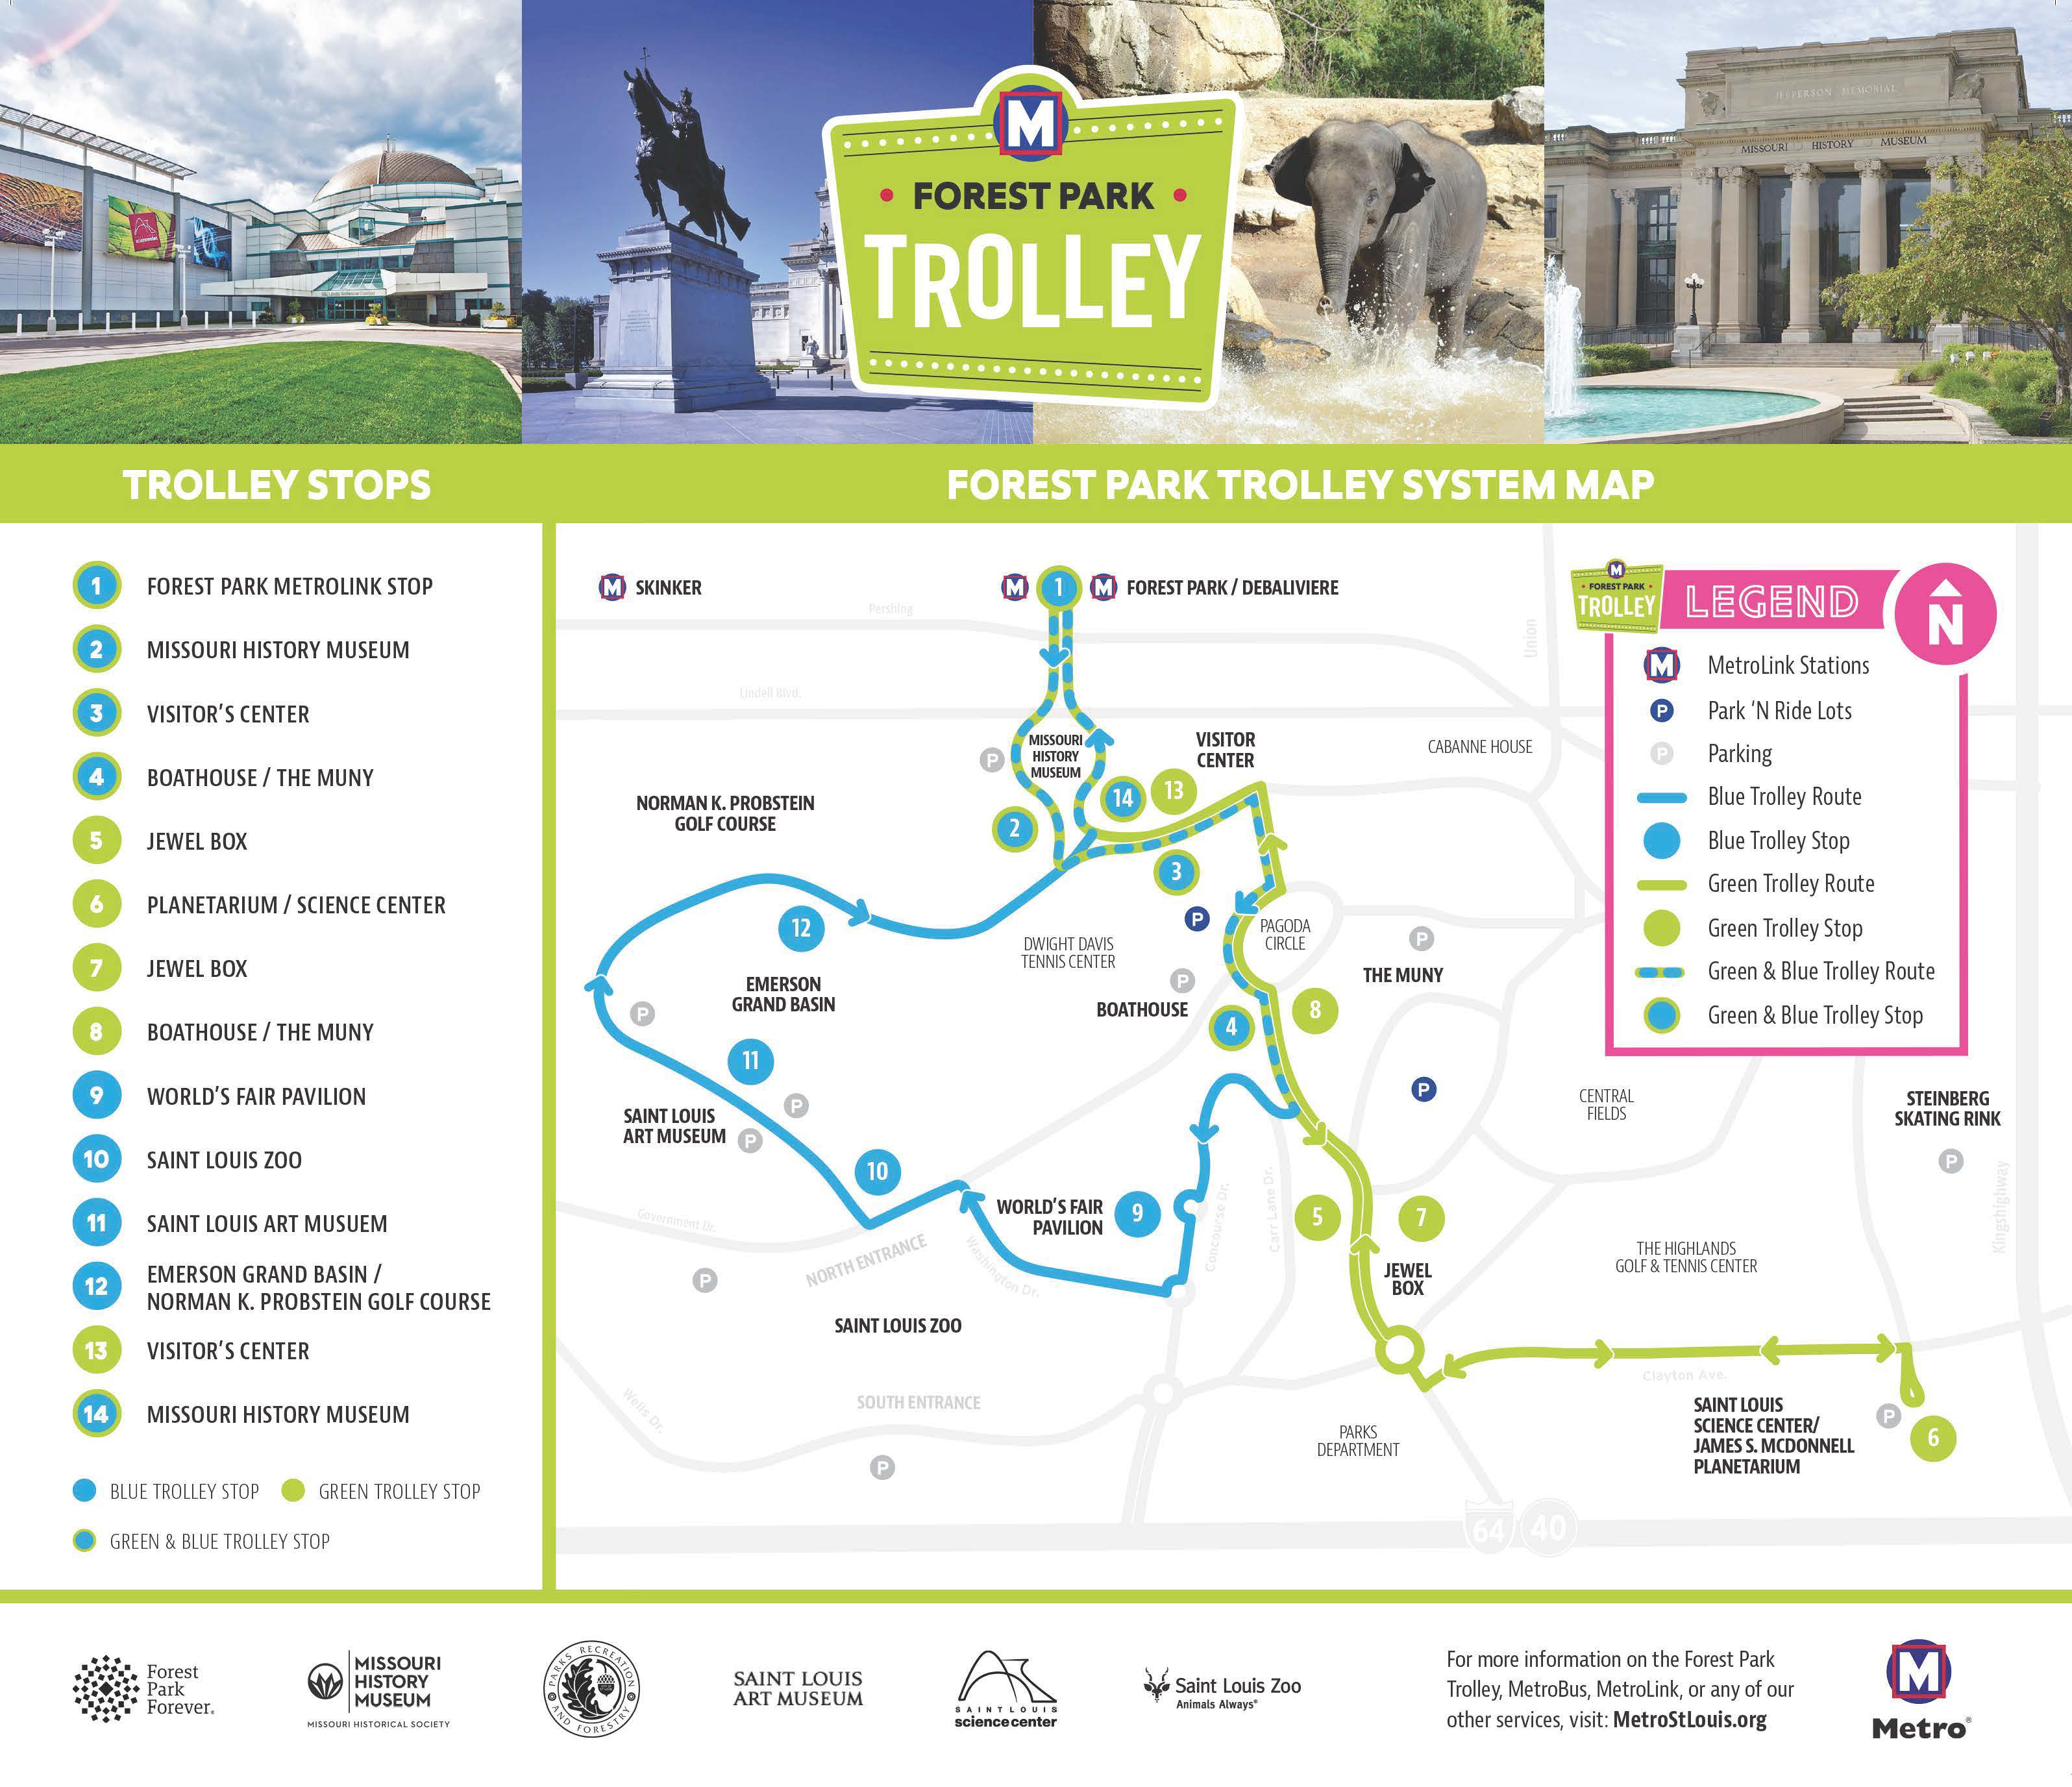 Forest Park Trolley is Free to Ride on Sundays This Year ... on school bus route map, light rail route map, people mover route map, st. charles streetcar route map, septa bus route map, monorail route map, honolulu bus route map,